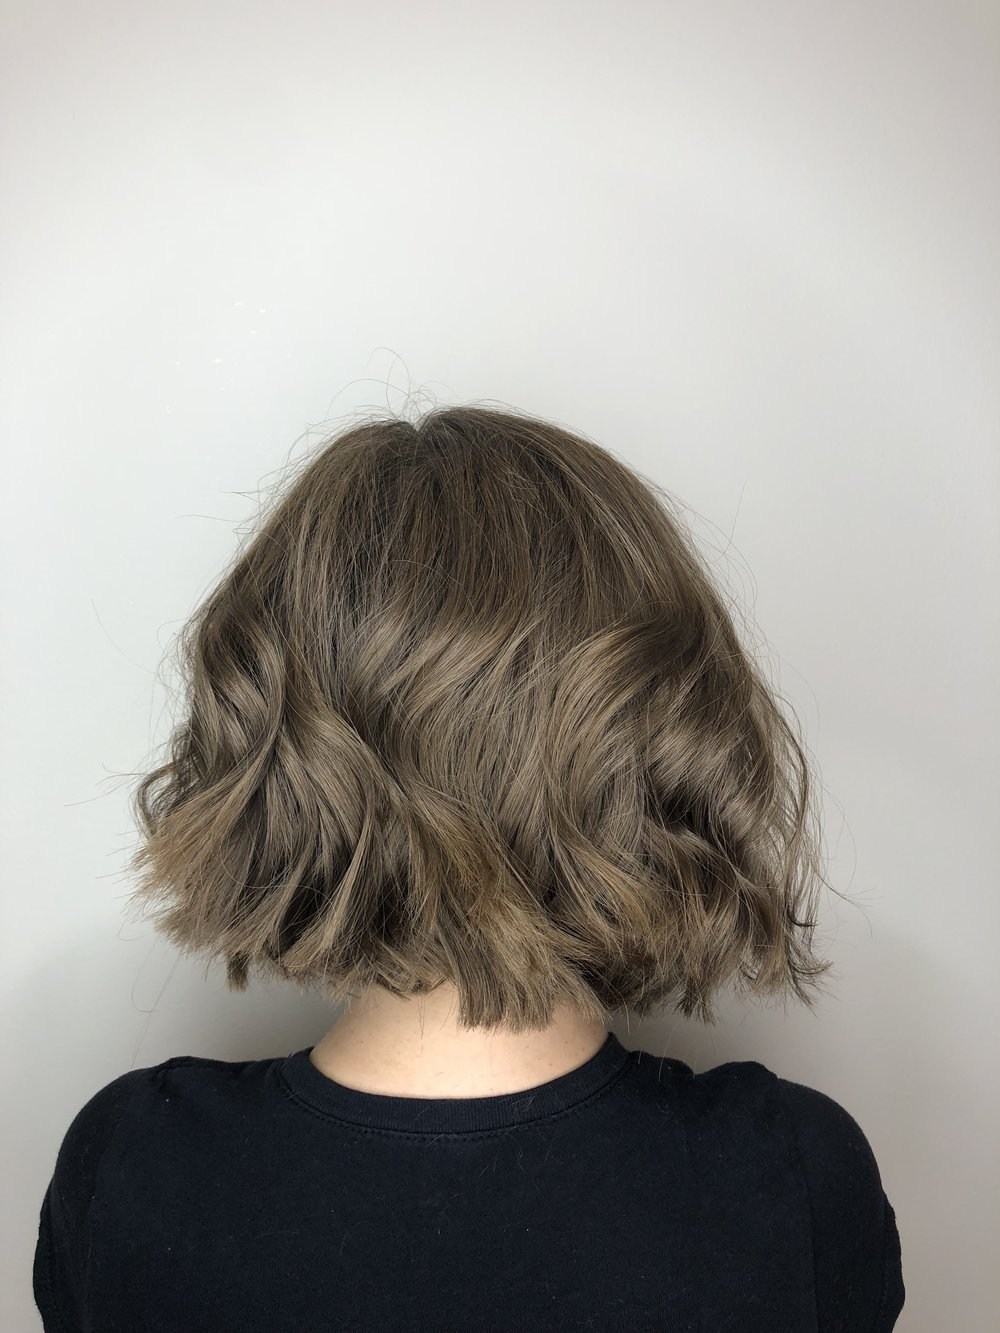 Kids hair by Sandy